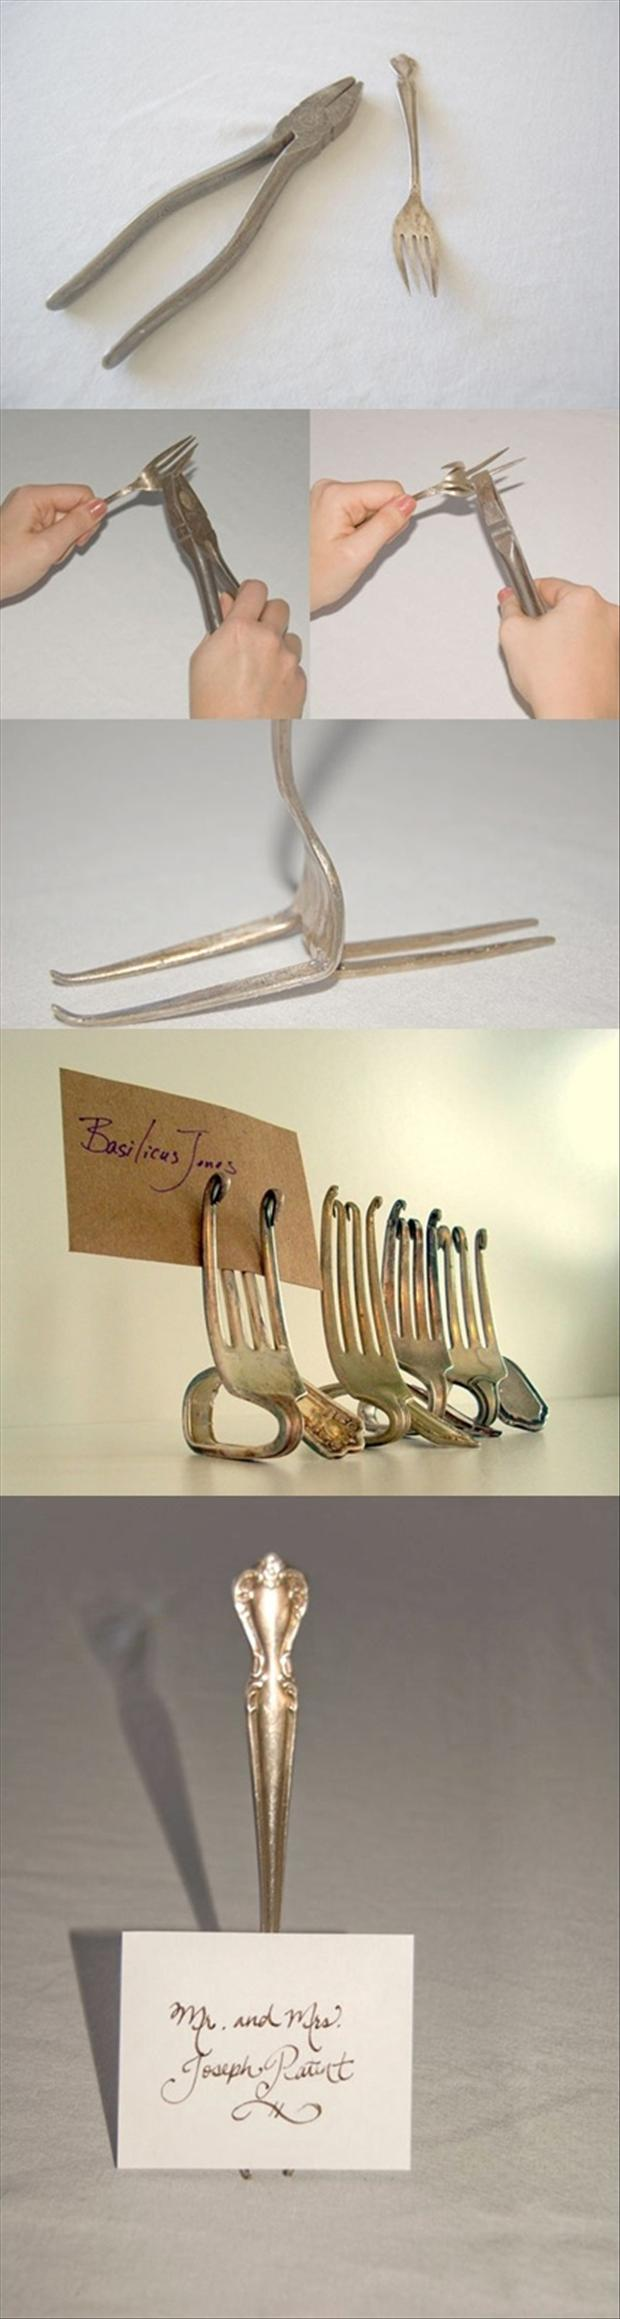 wedding crafts, recycle old forks